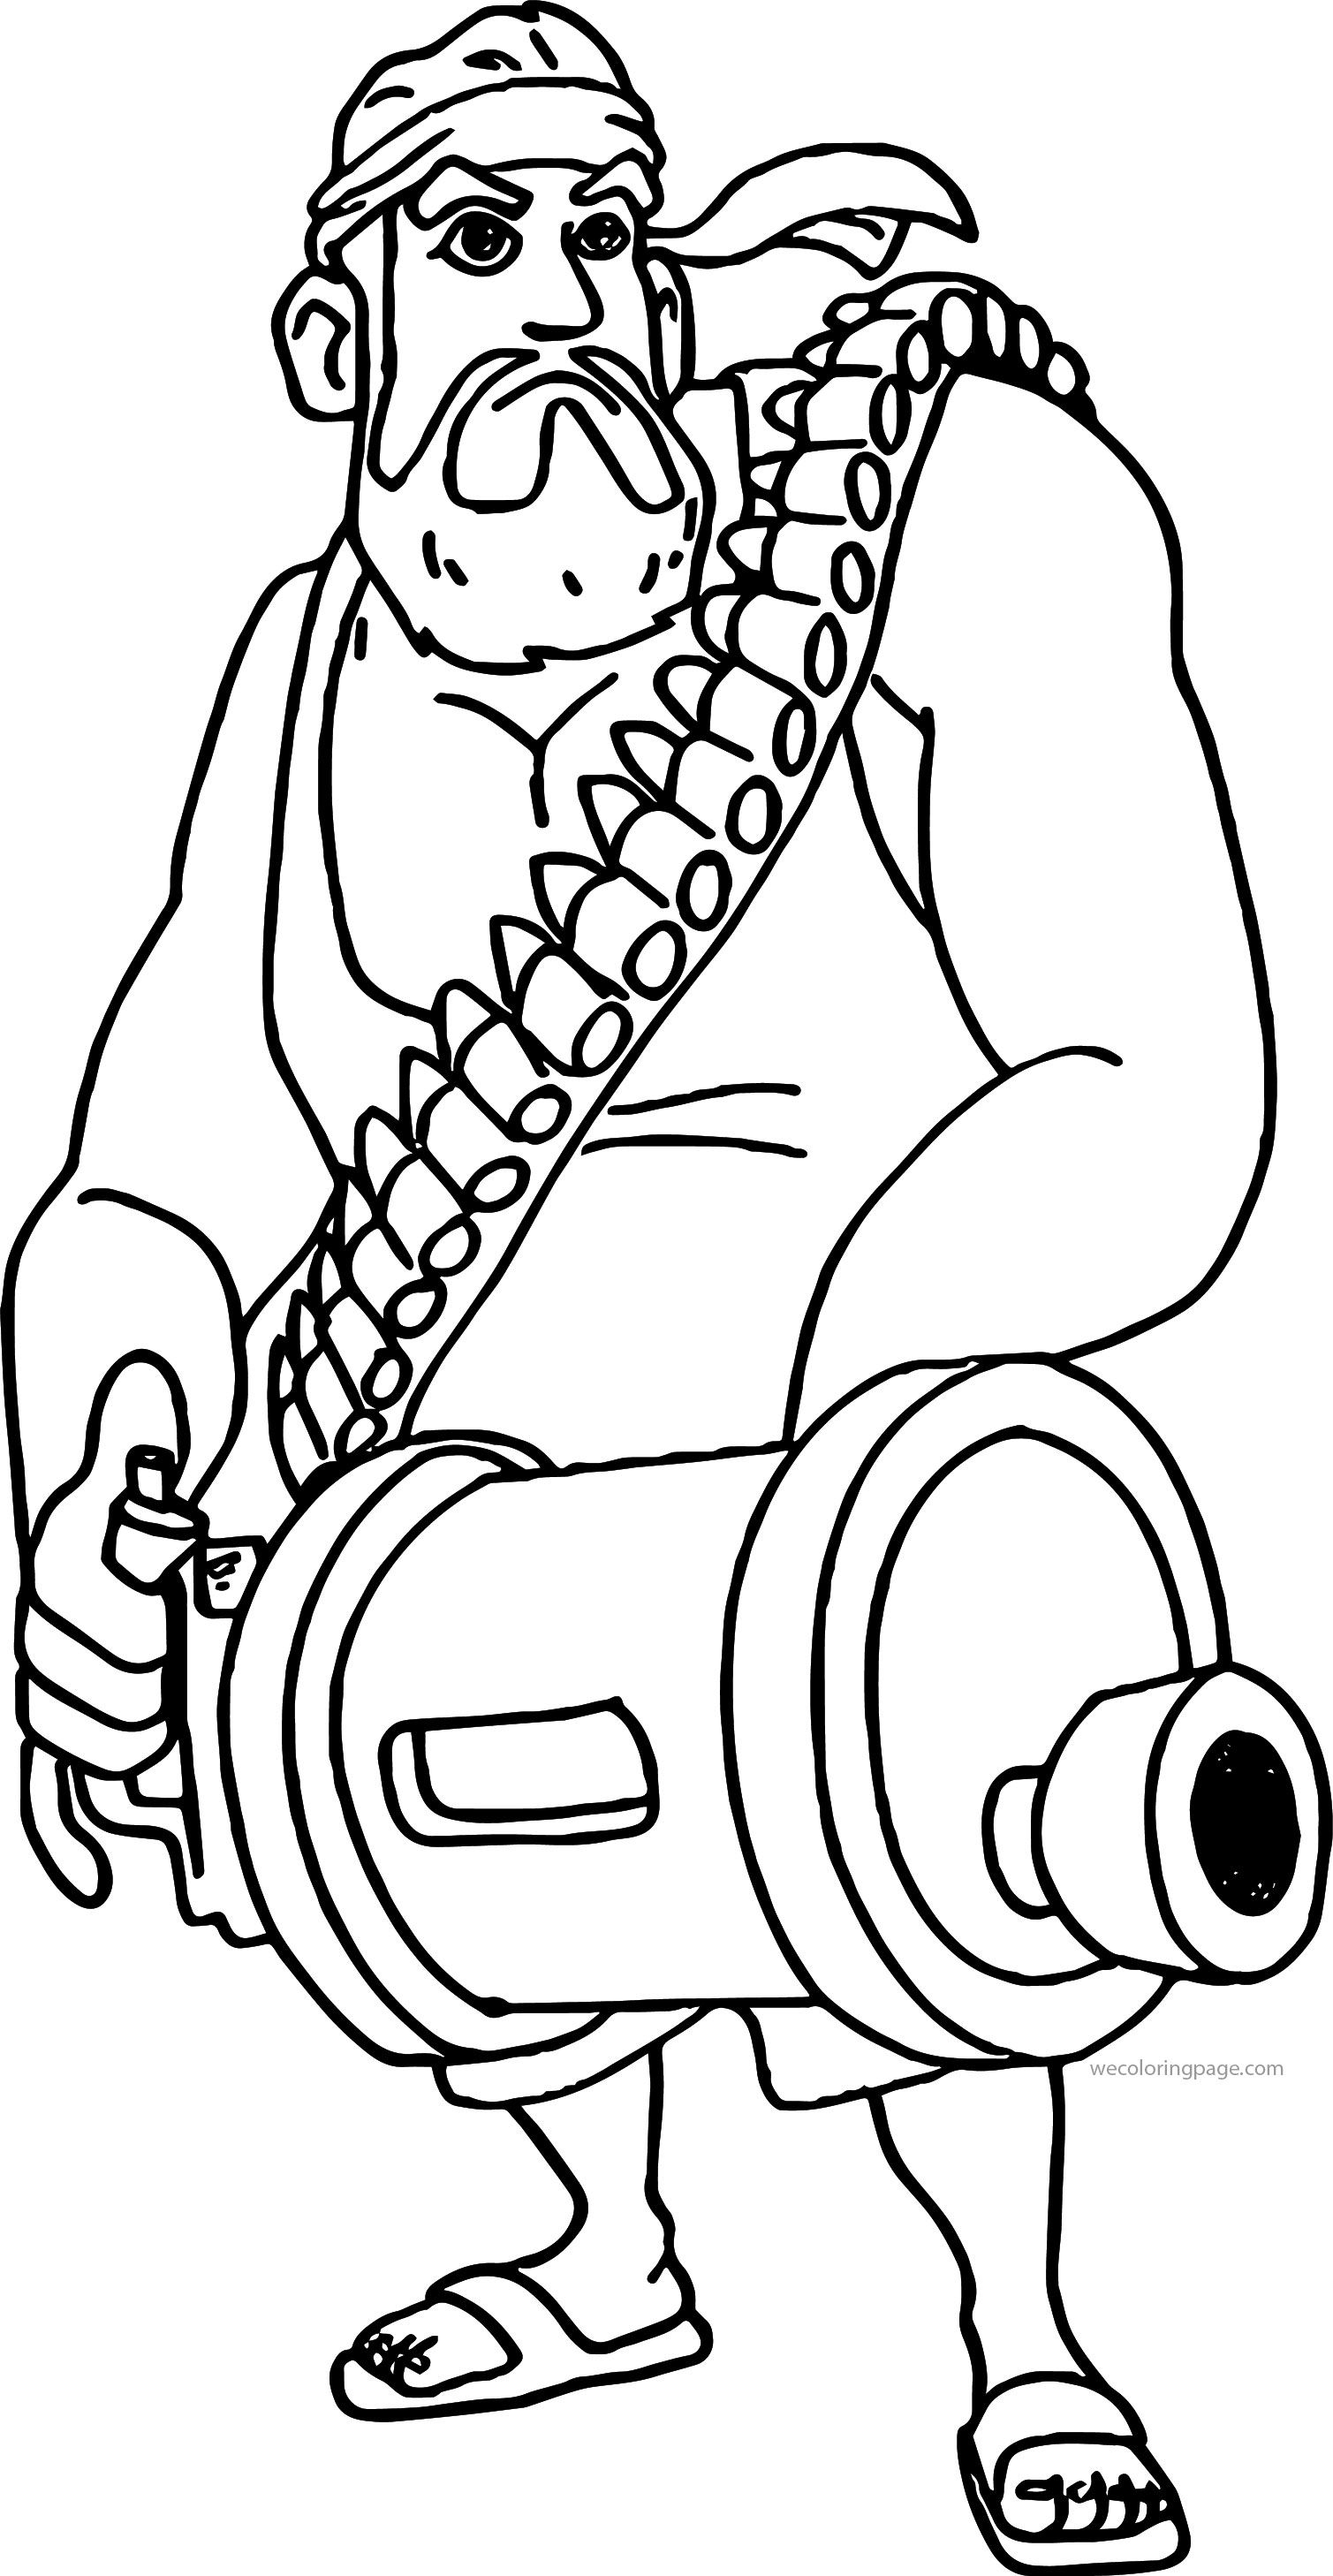 Awesome Boom Coloring On The Beach Character Heavy Soldier Coloring Page Coloring Pages Harry Potter Coloring Pages Swear Word Coloring Book